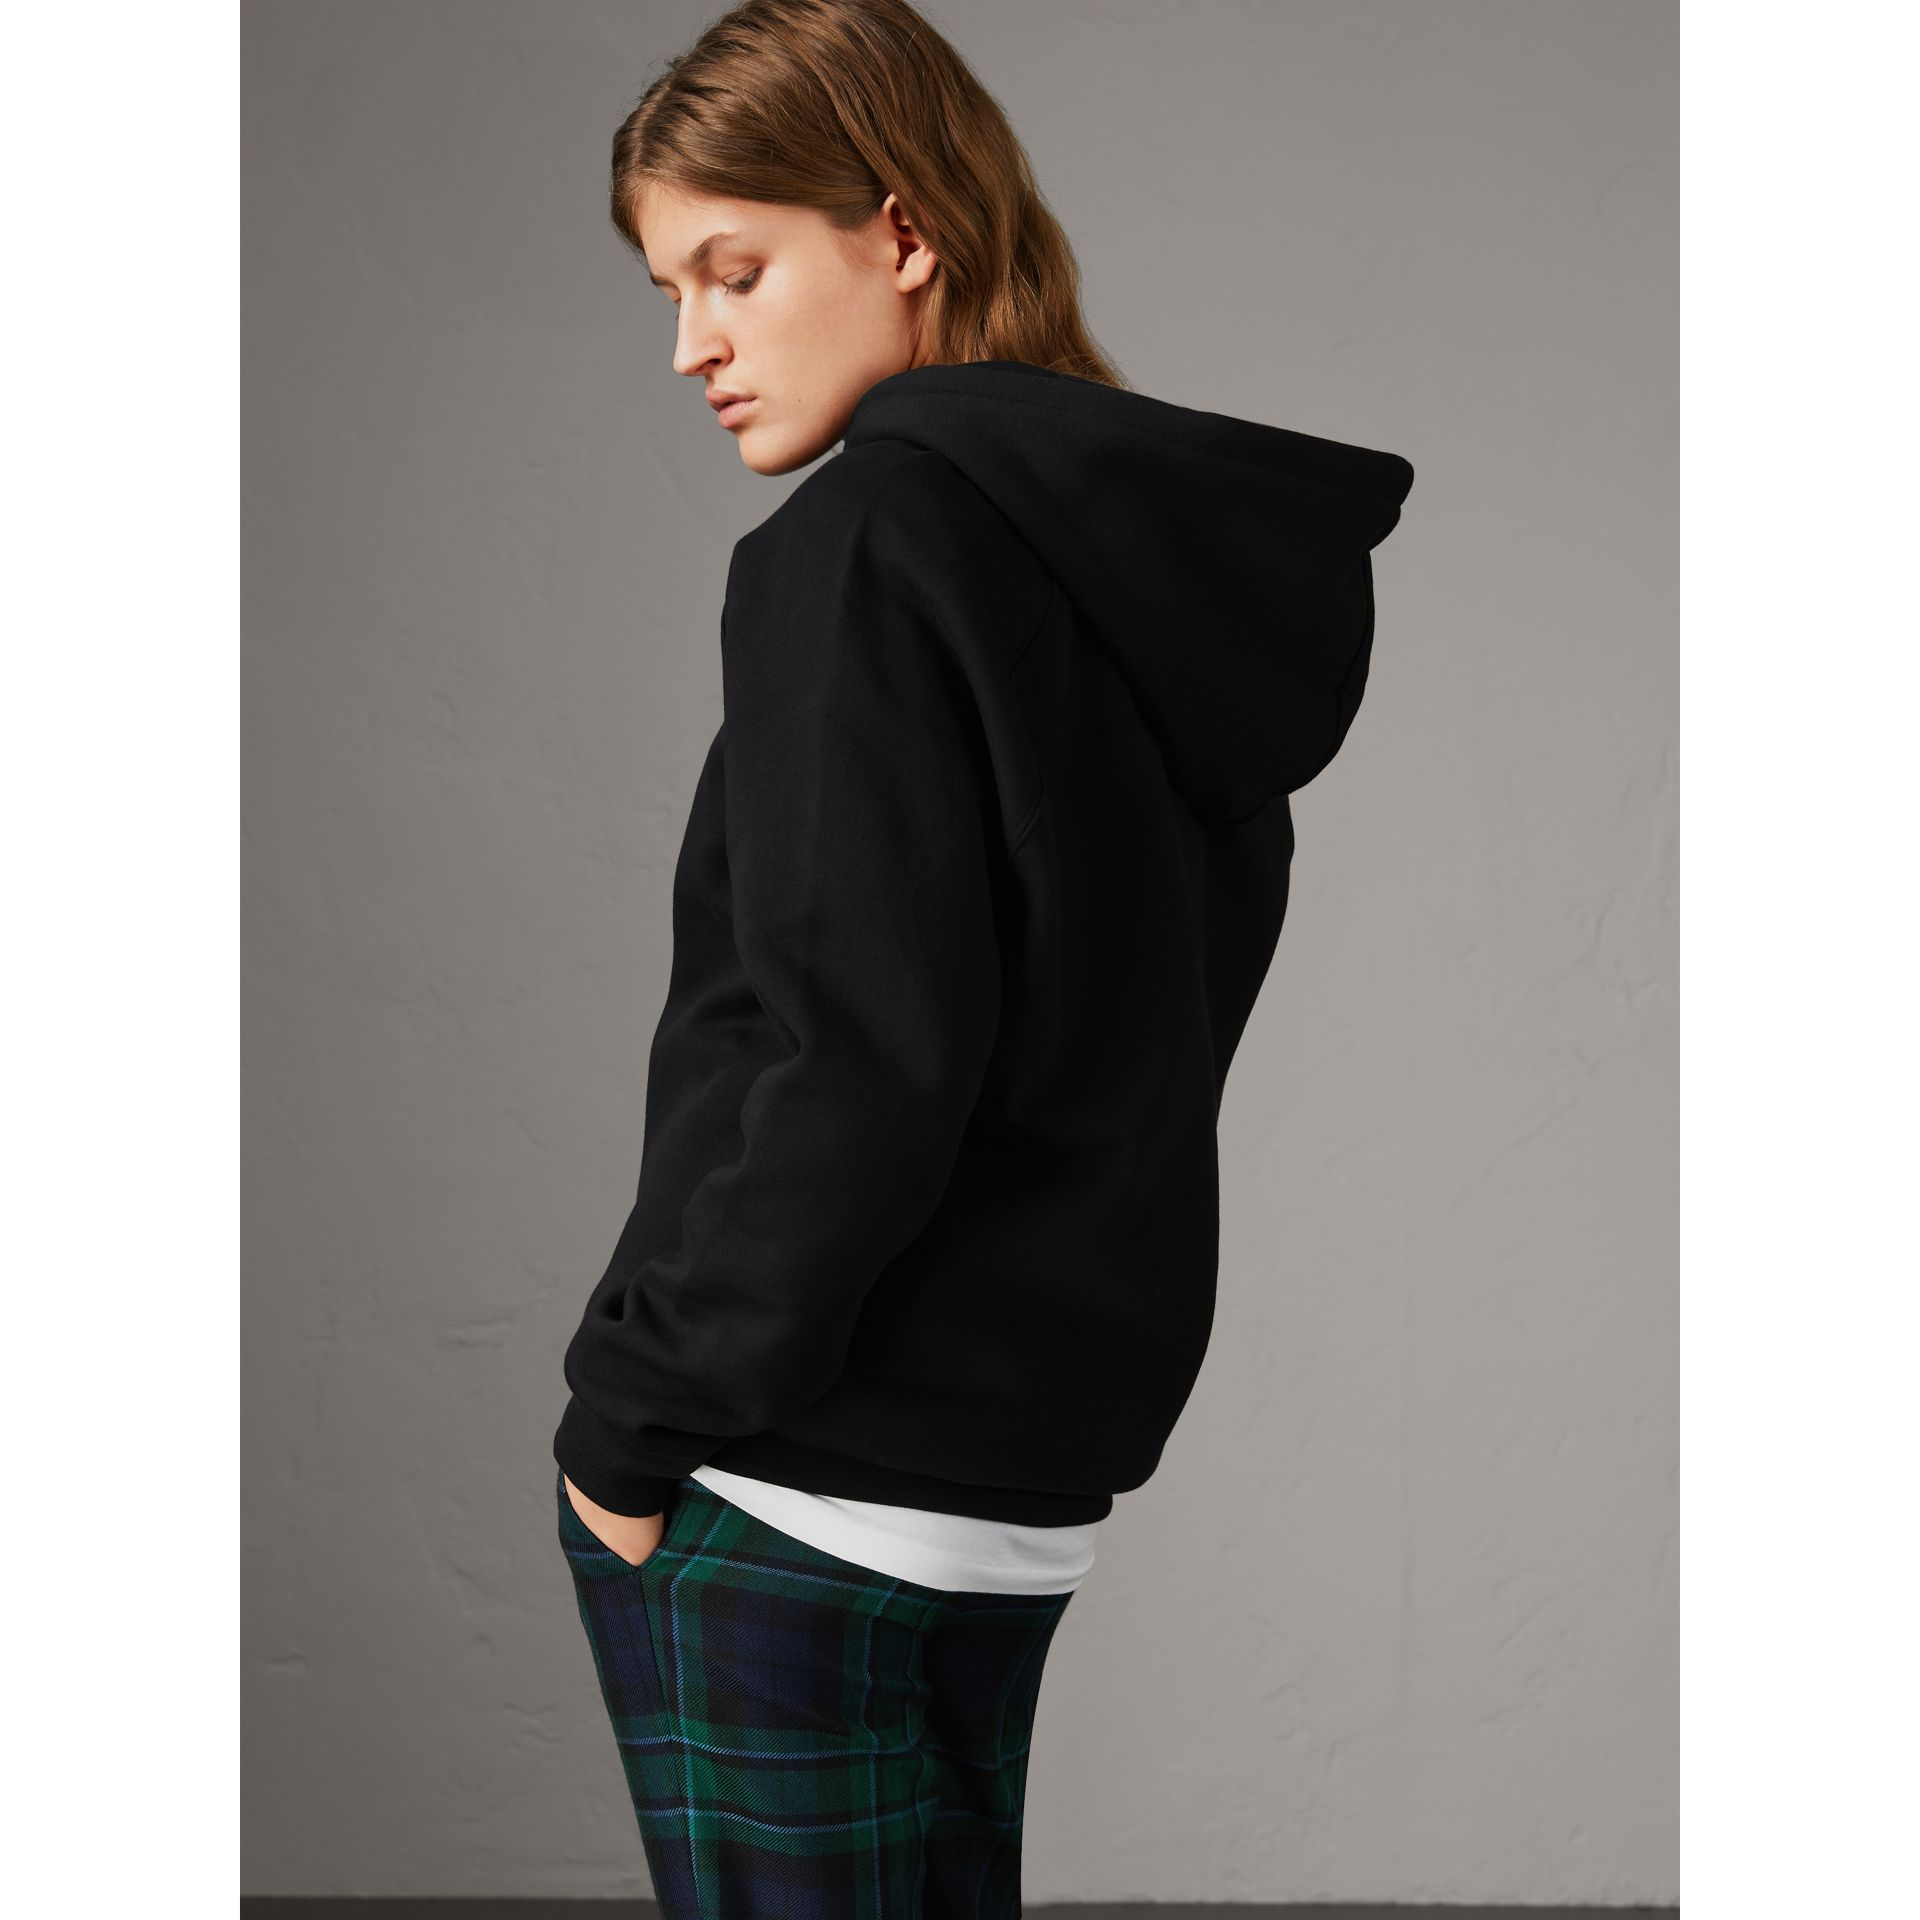 Embroidered Hooded Sweatshirt in Black - Women | Burberry - gallery image 2